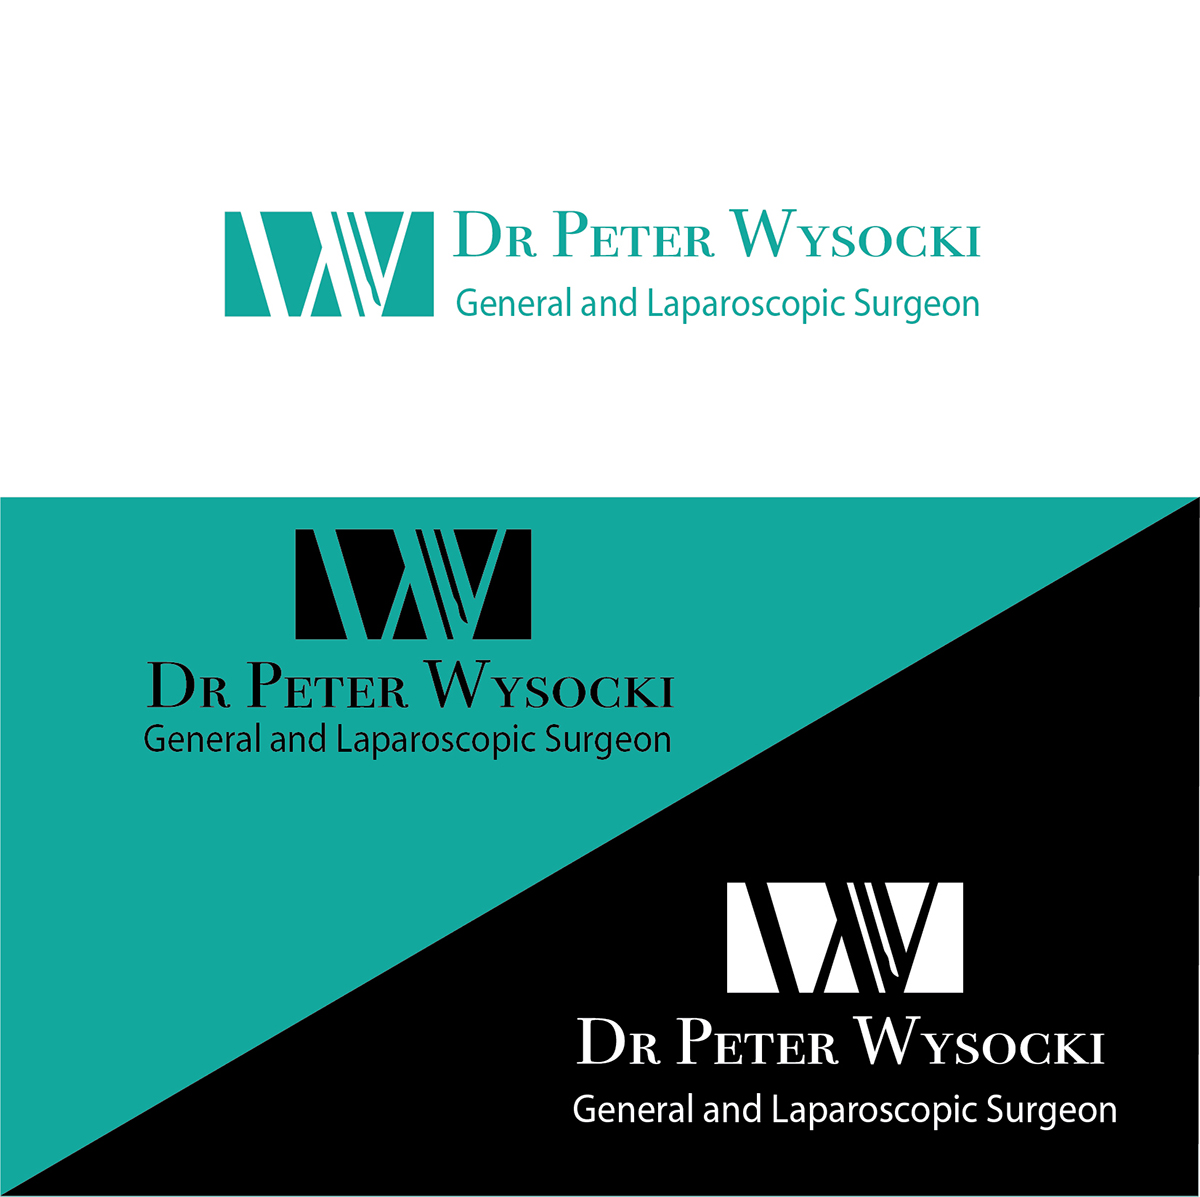 Modern Professional Health Care Logo Design For Dr Peter Wysocki General And Laparoscopic Surgeon By Idea Works Design 14569458